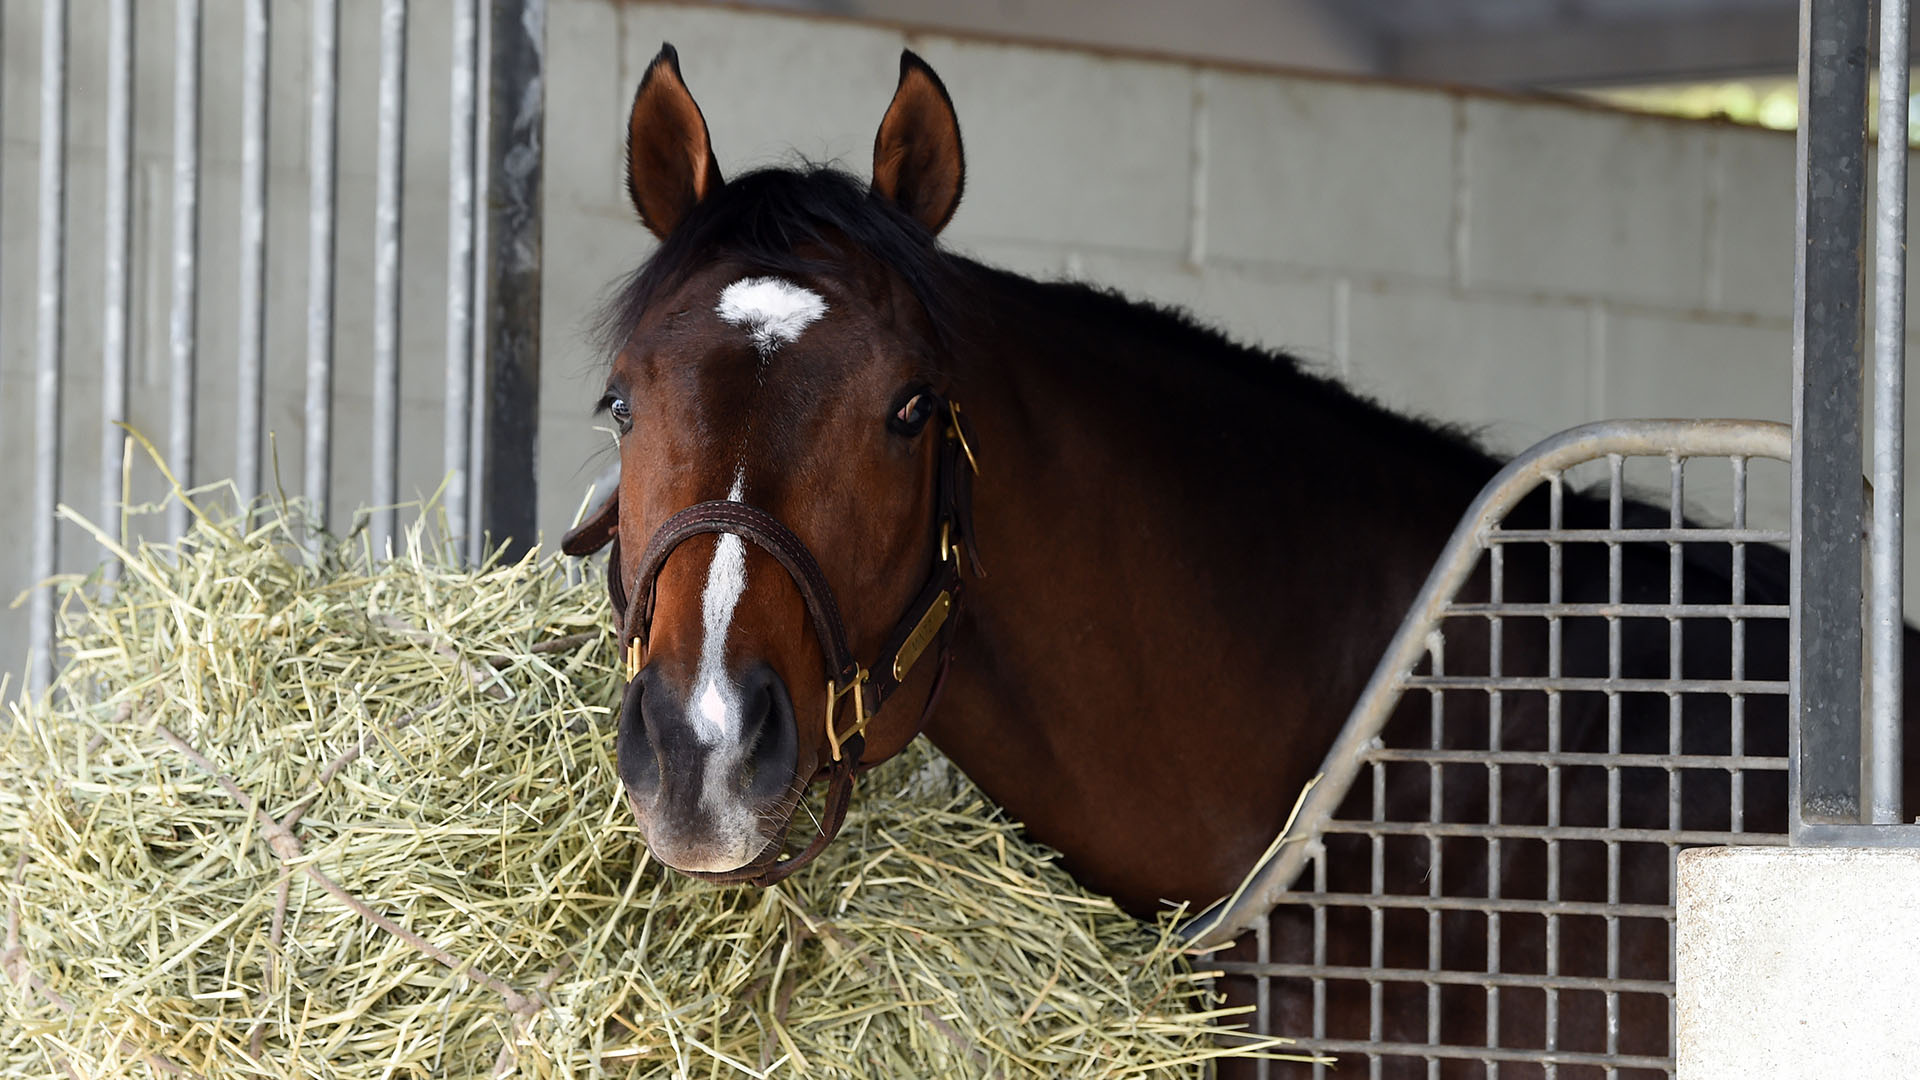 Mintz relaxes in his stall at Palm Meadows Thoroughbred Training Center in Boynton Beach, Florida.